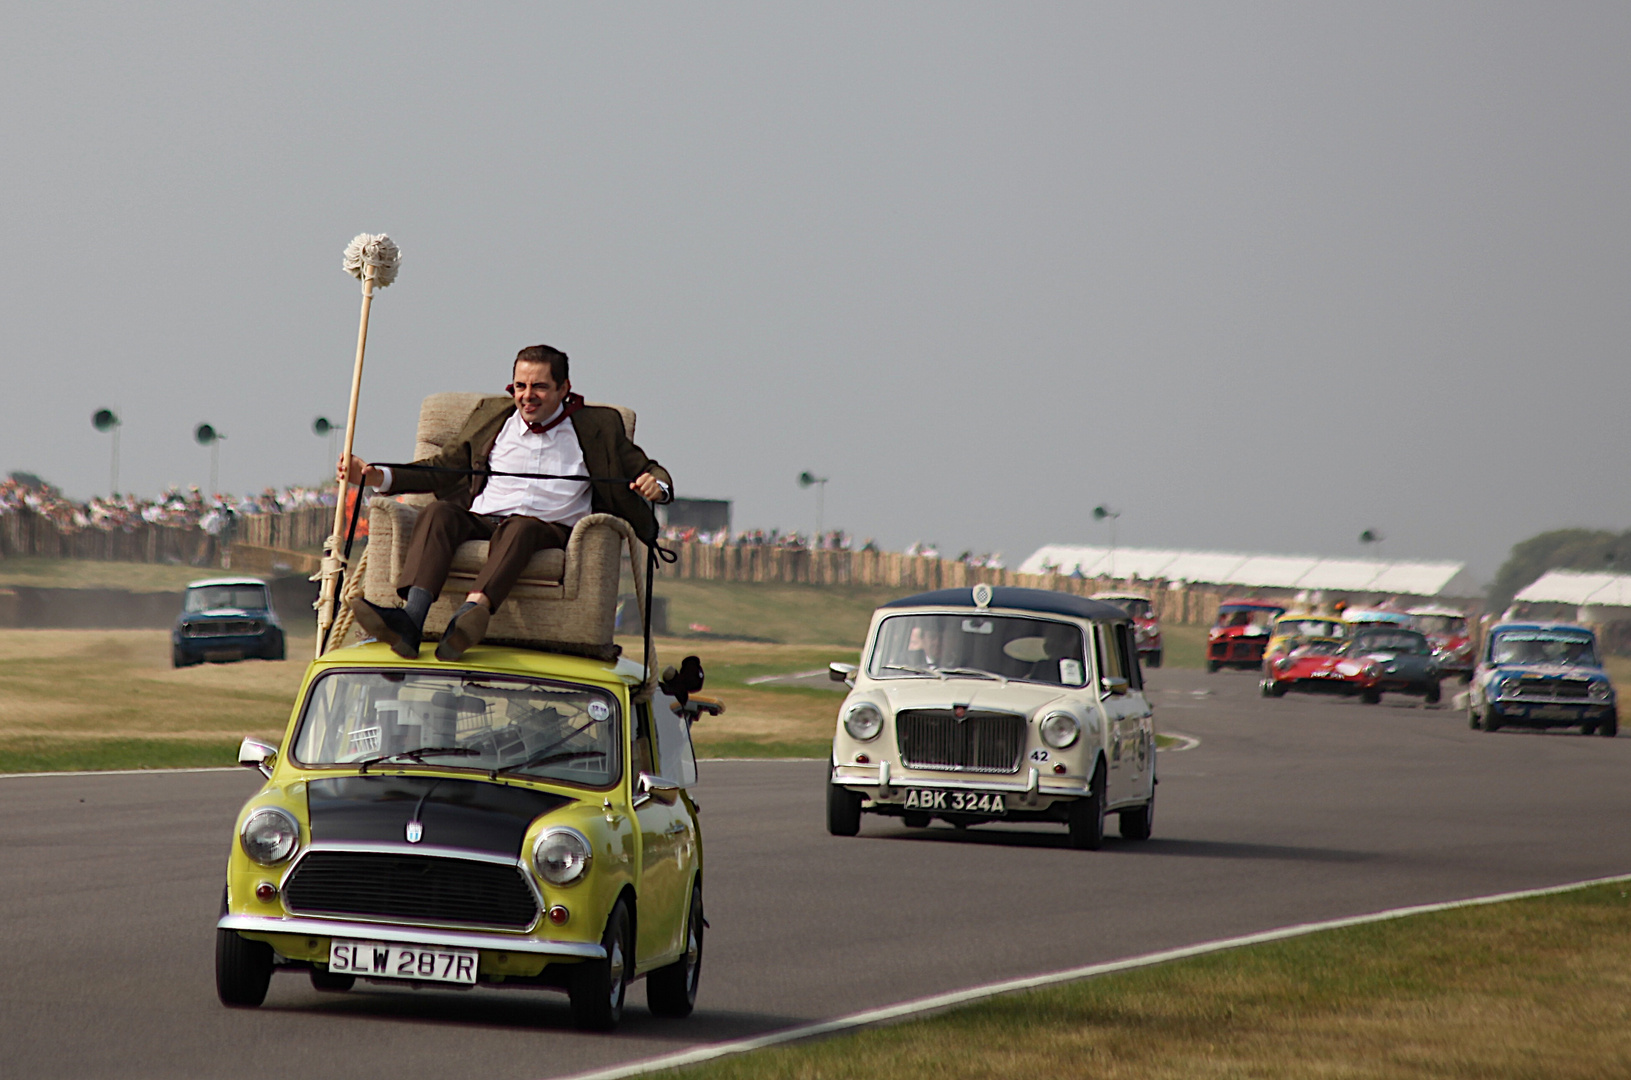 """Mr. Bean"" on the track !"